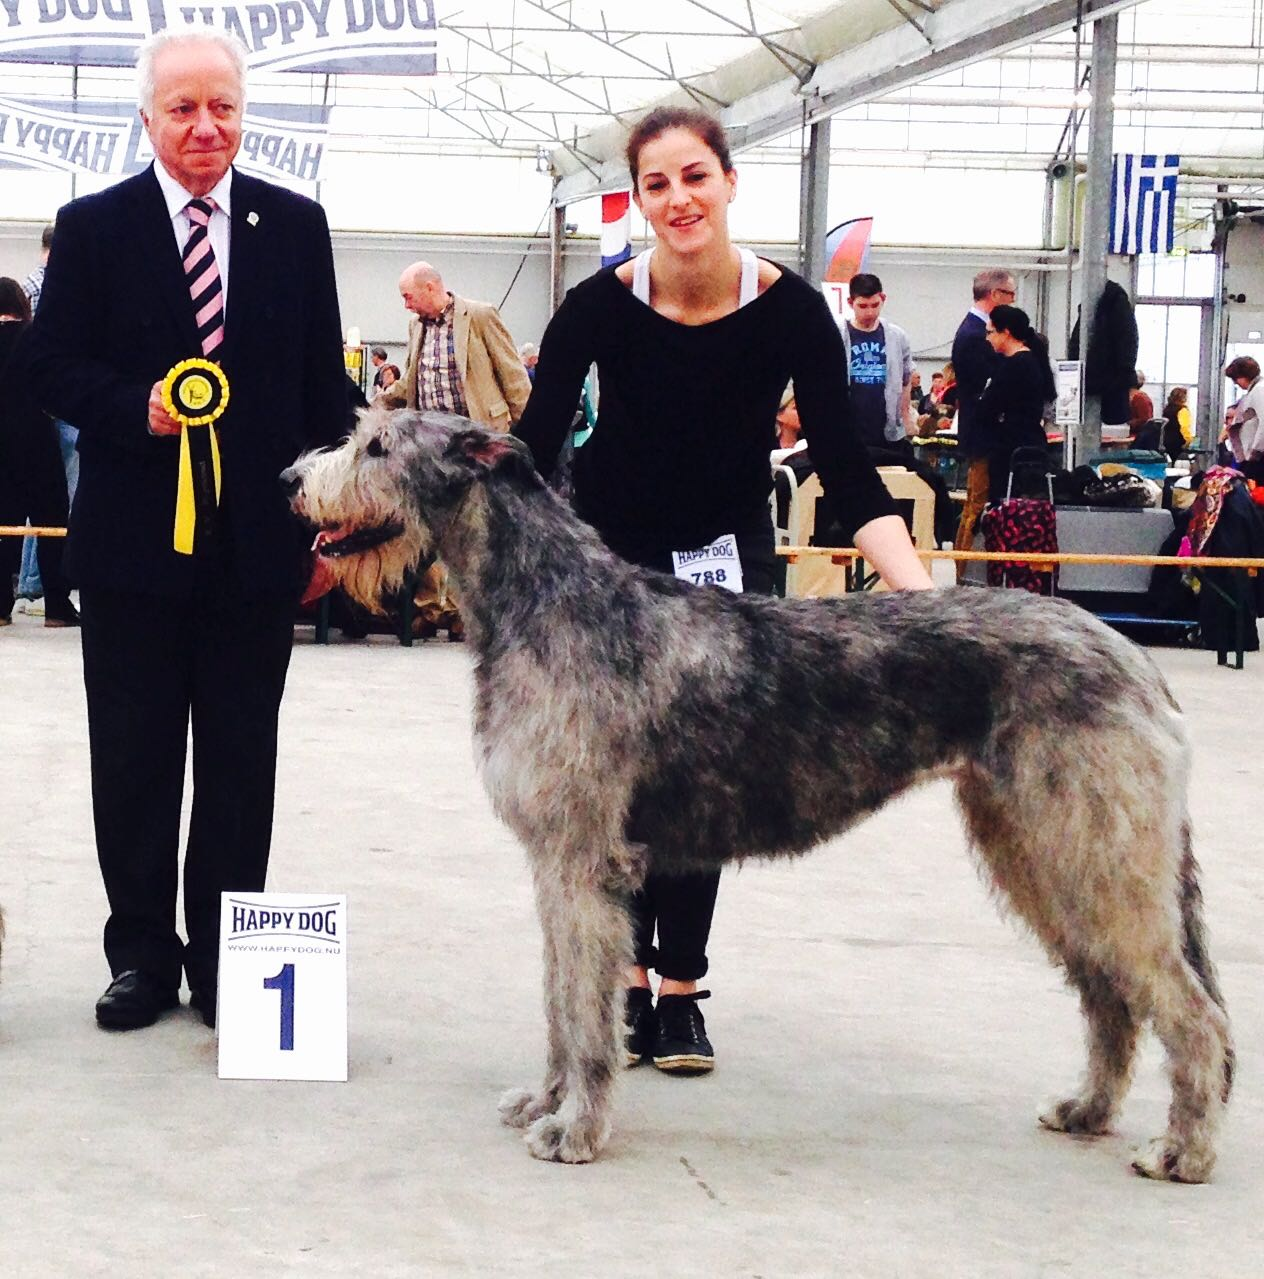 Seven Best of Breed and fourth in group!